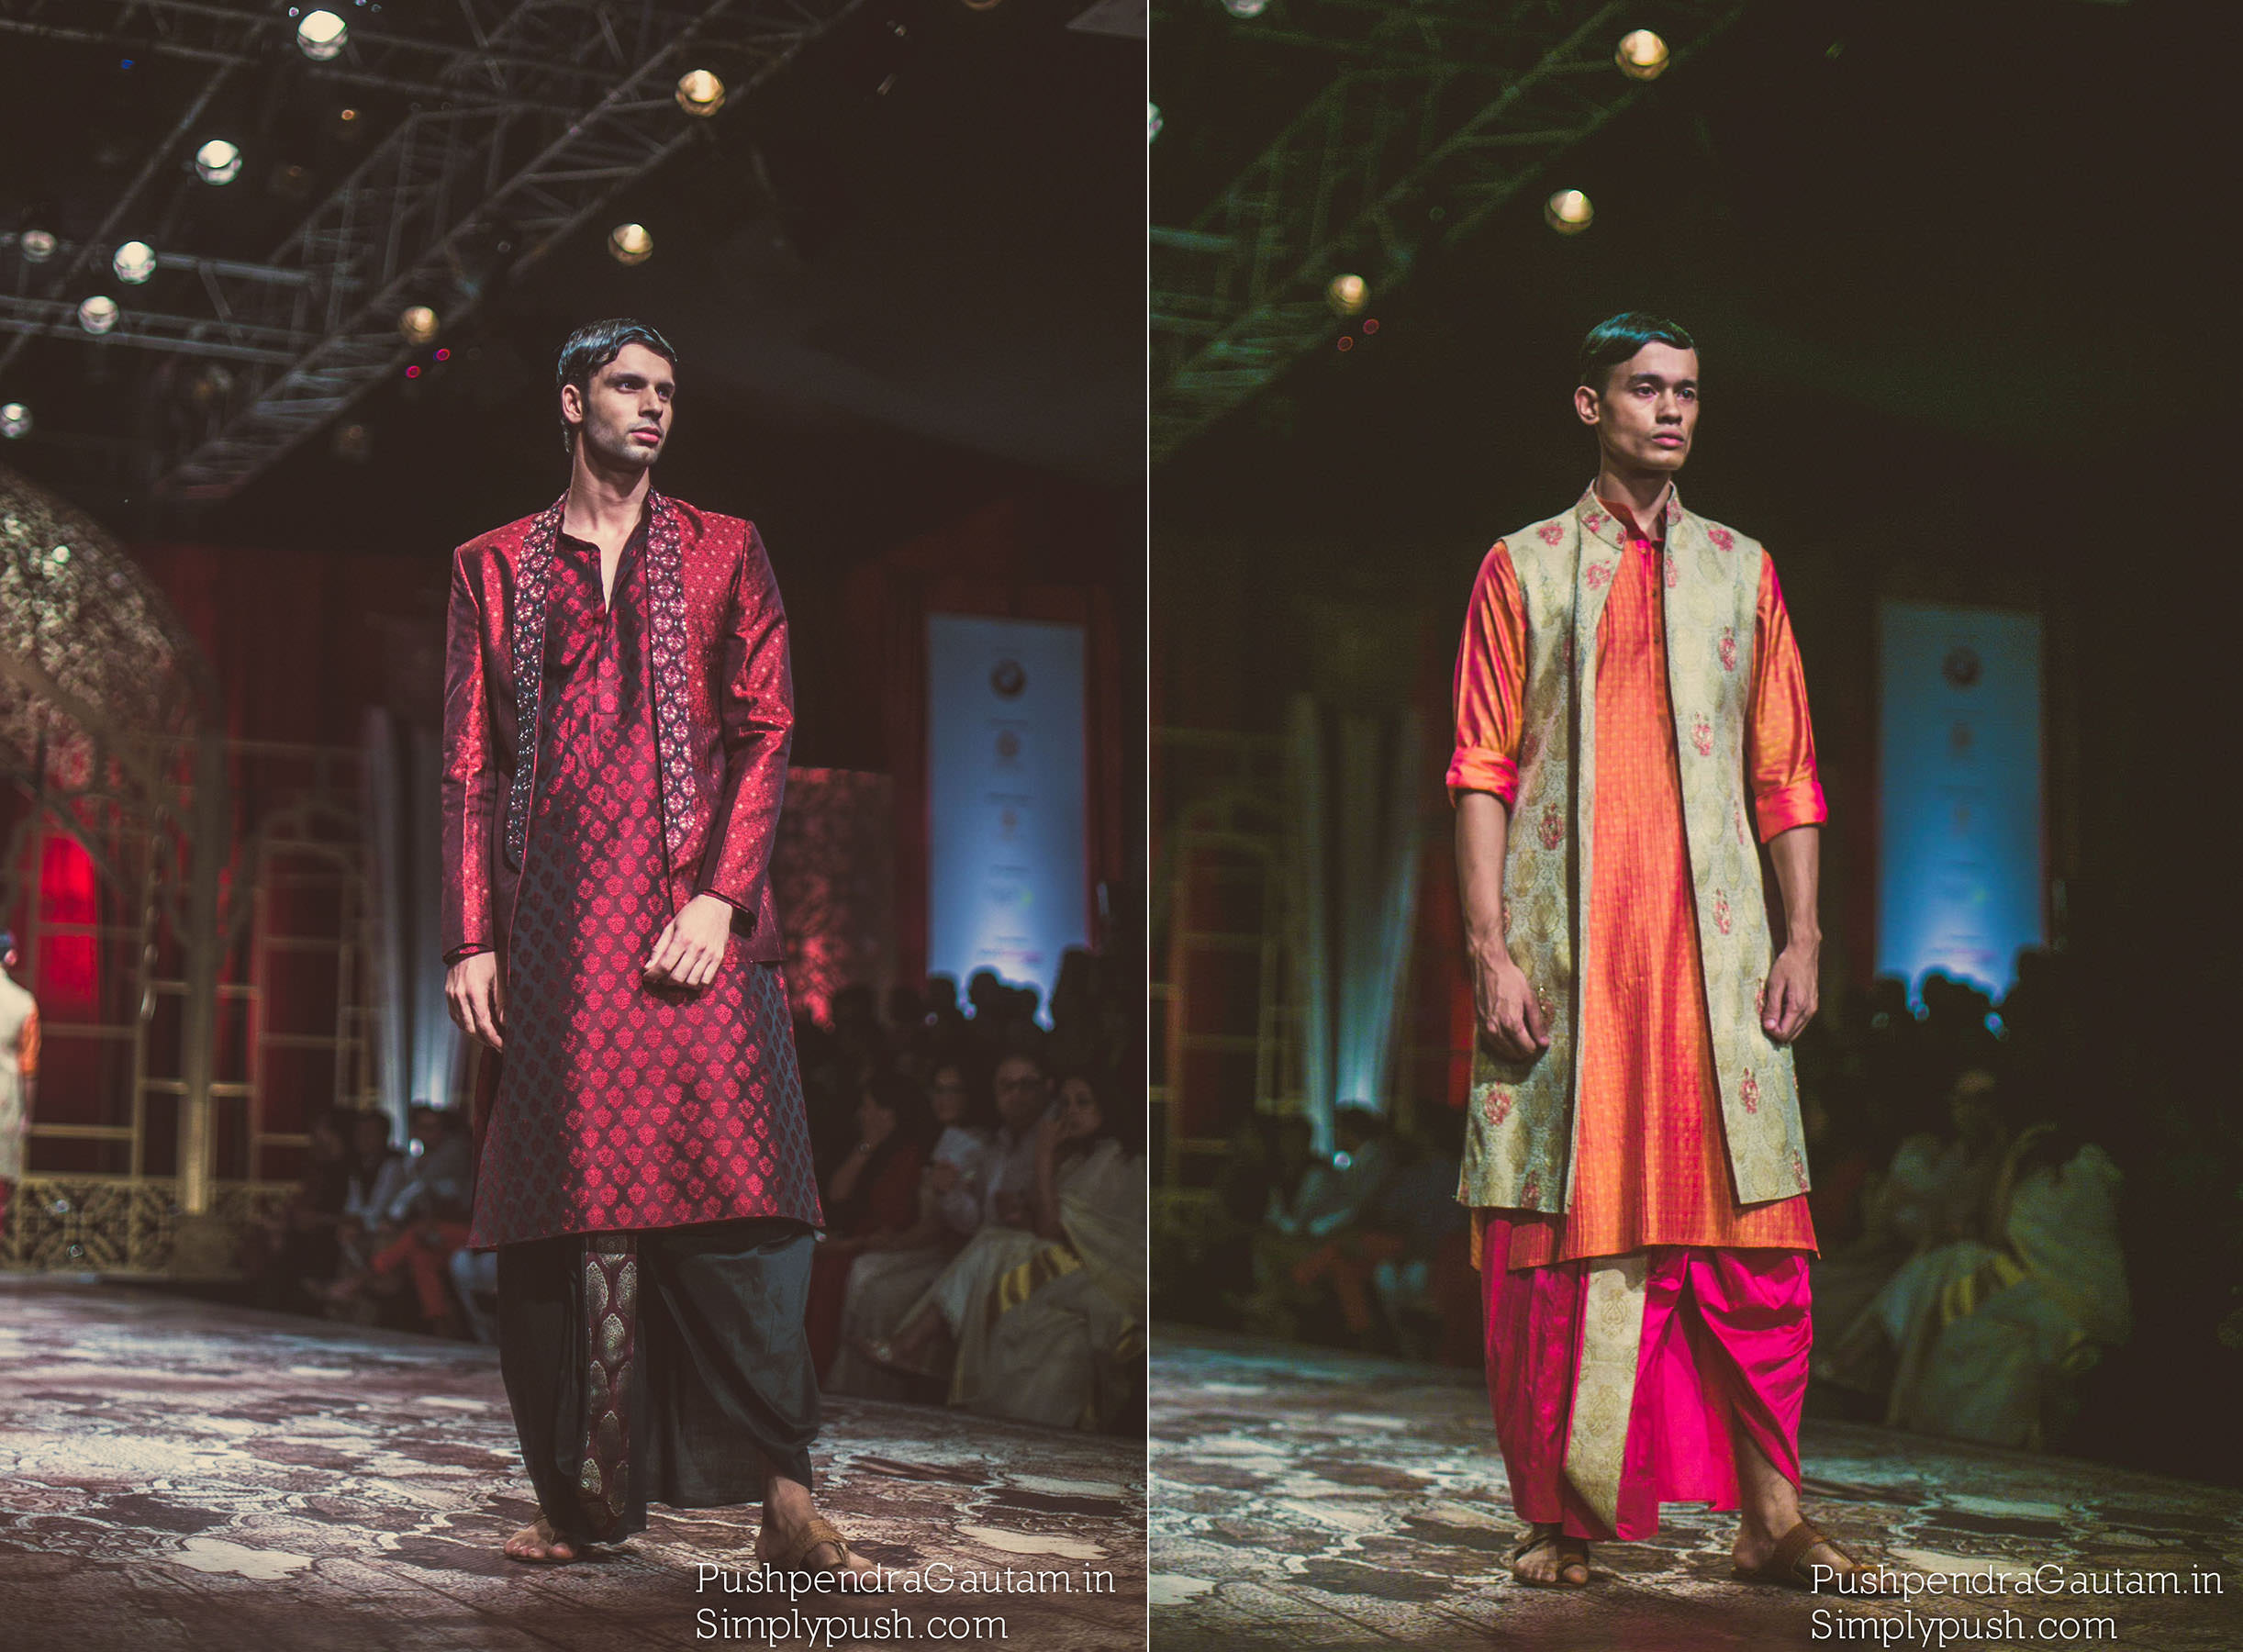 Raghavendra-rathore-bmw-india-bridal-fashion-week-pushpendragautam-pics-event-photographer-india